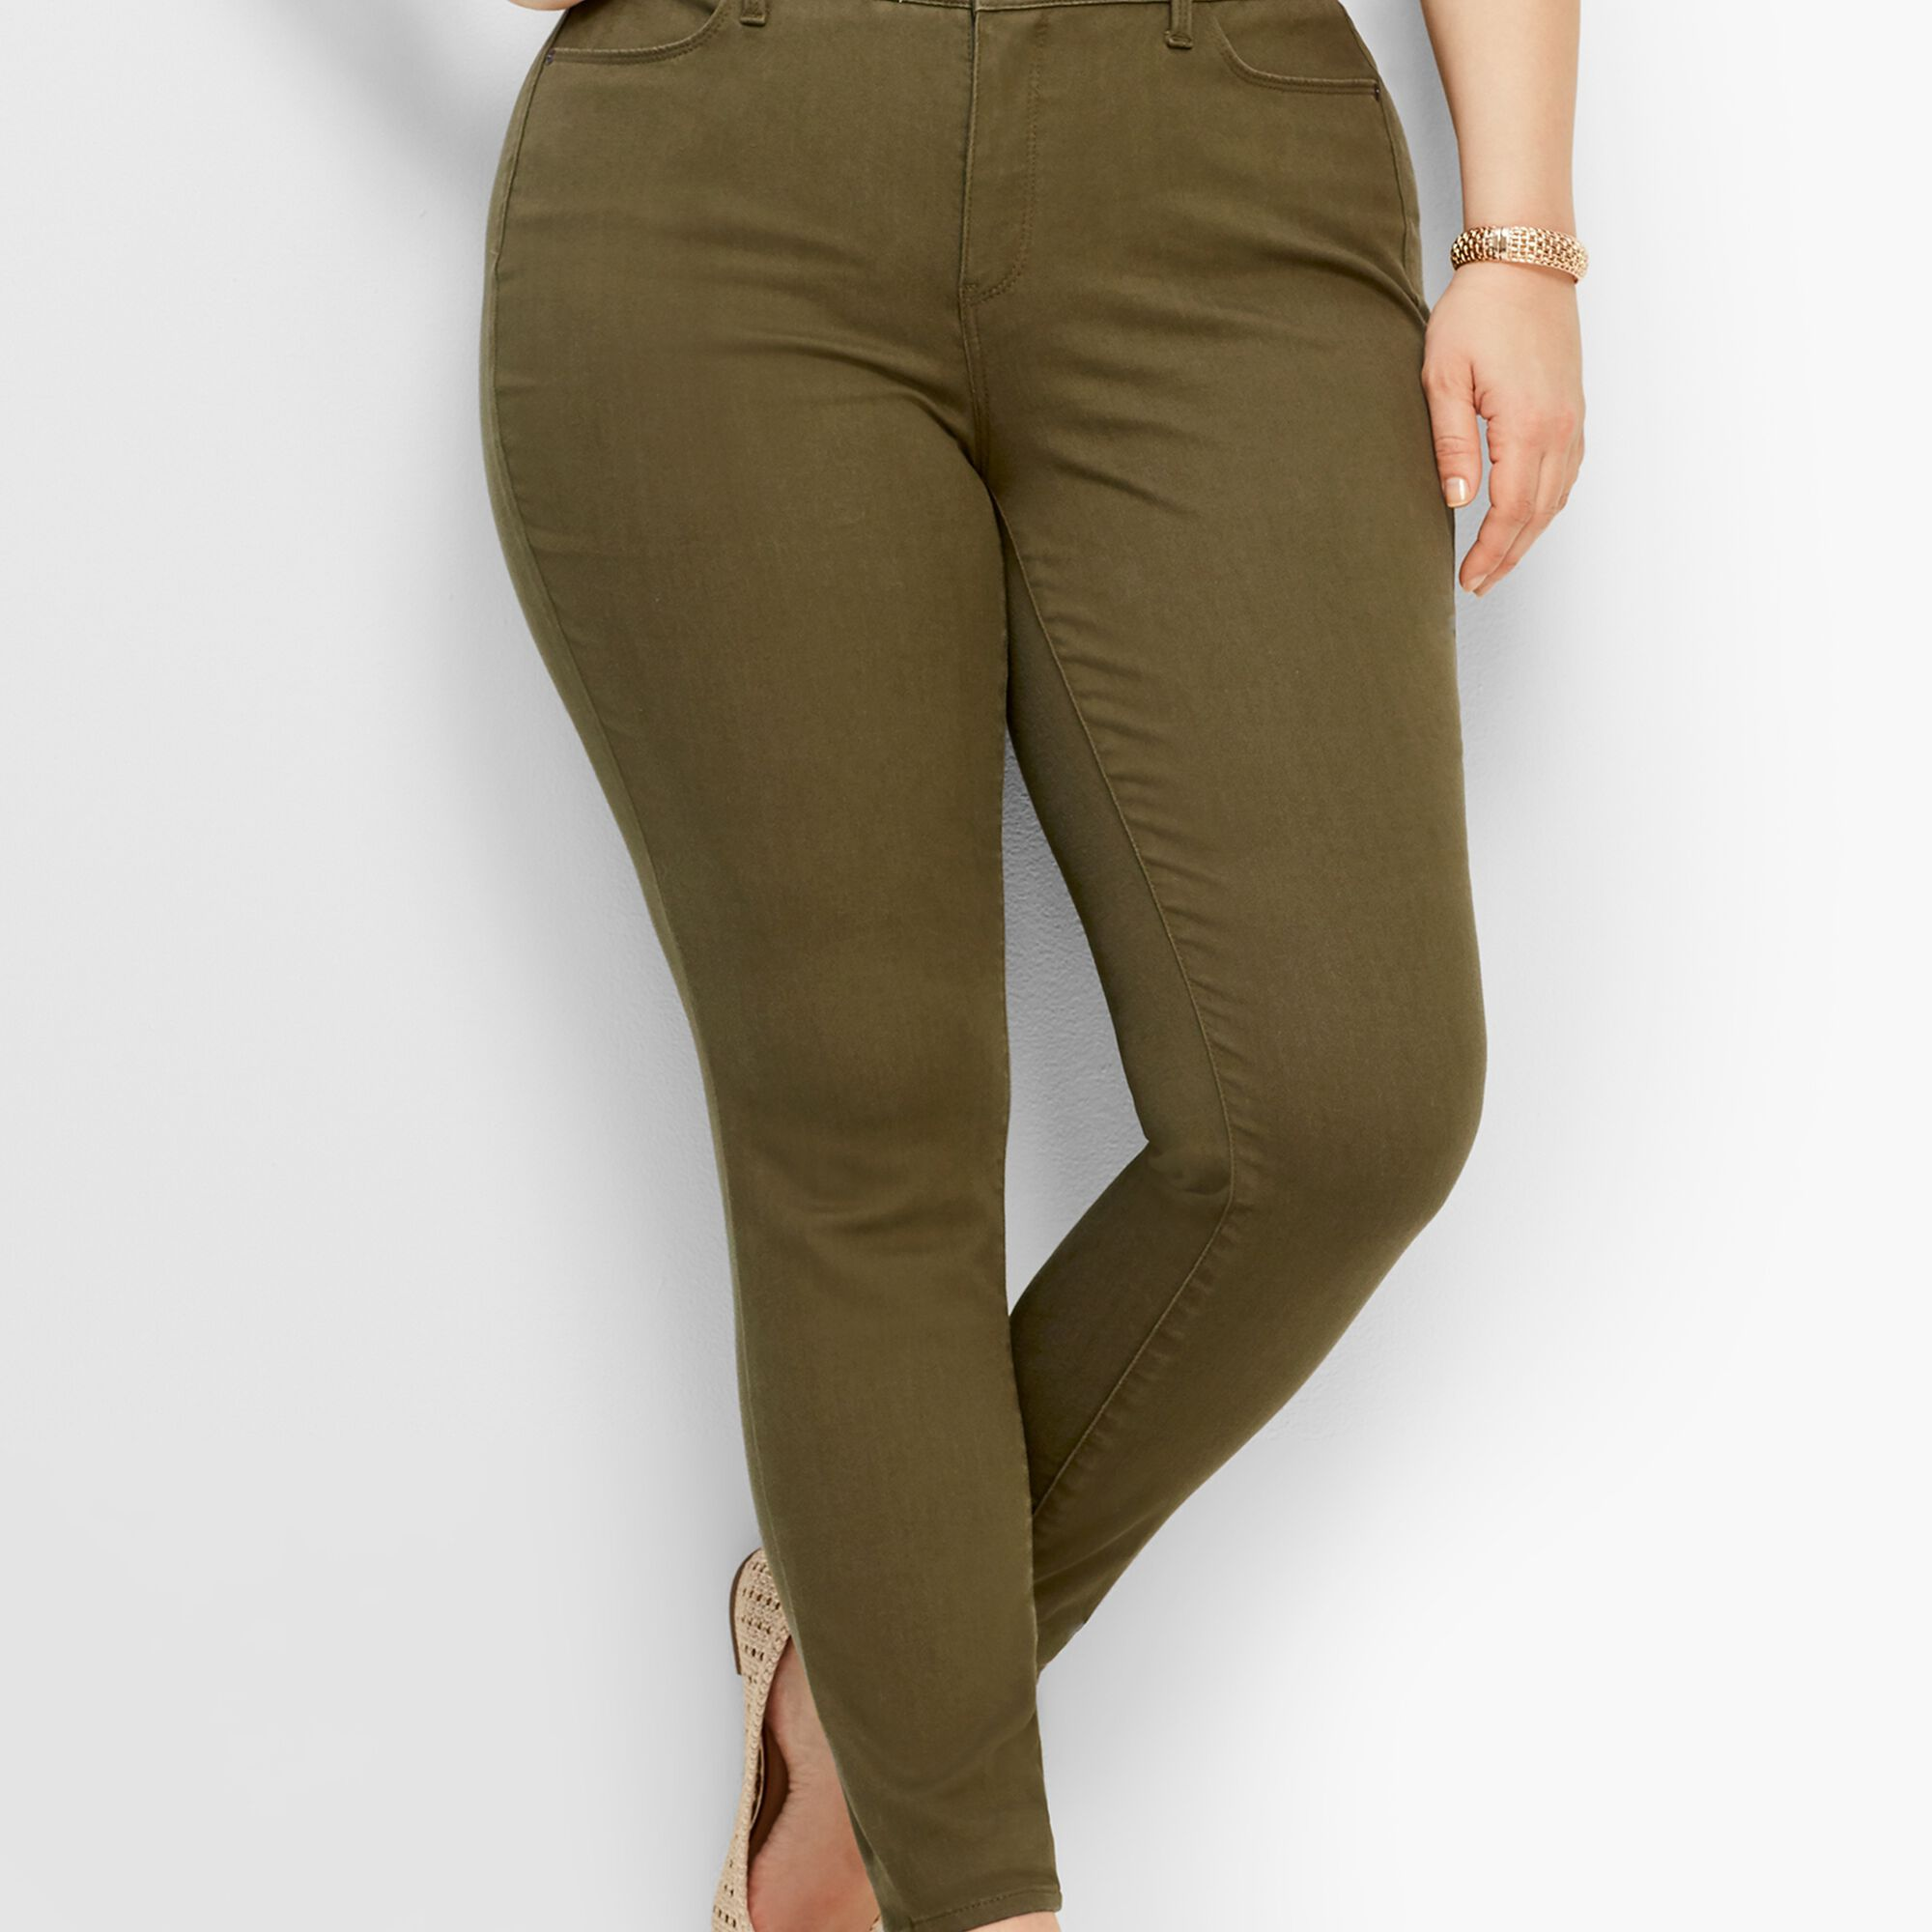 37f2a289a8fe4 Comfort Stretch Denim Jeggings - Colored Opens a New Window.